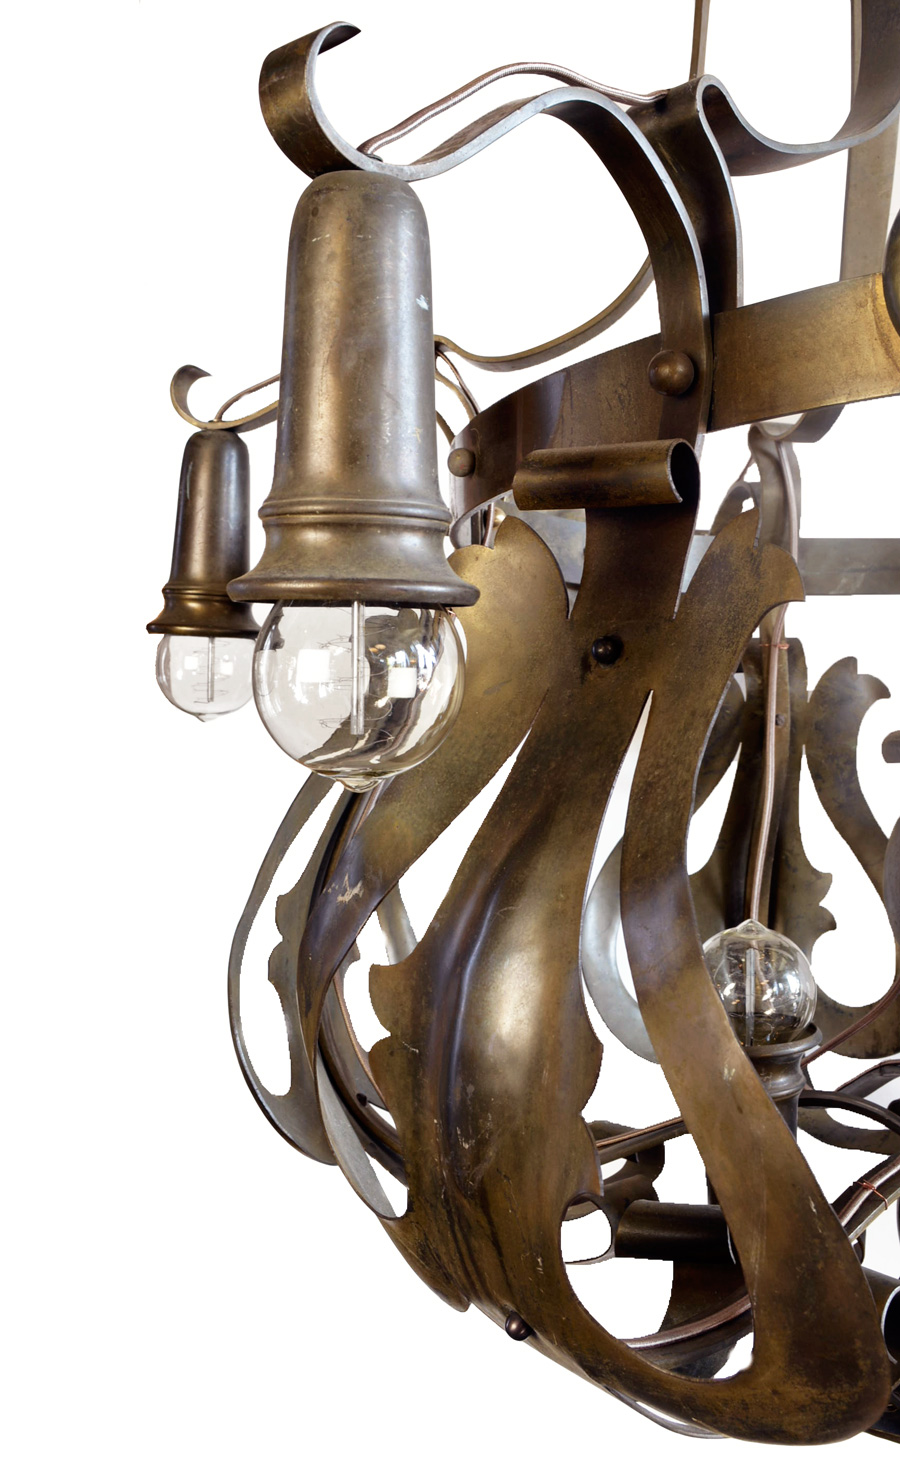 43288-art-nouveau-chandelier-detail.jpg